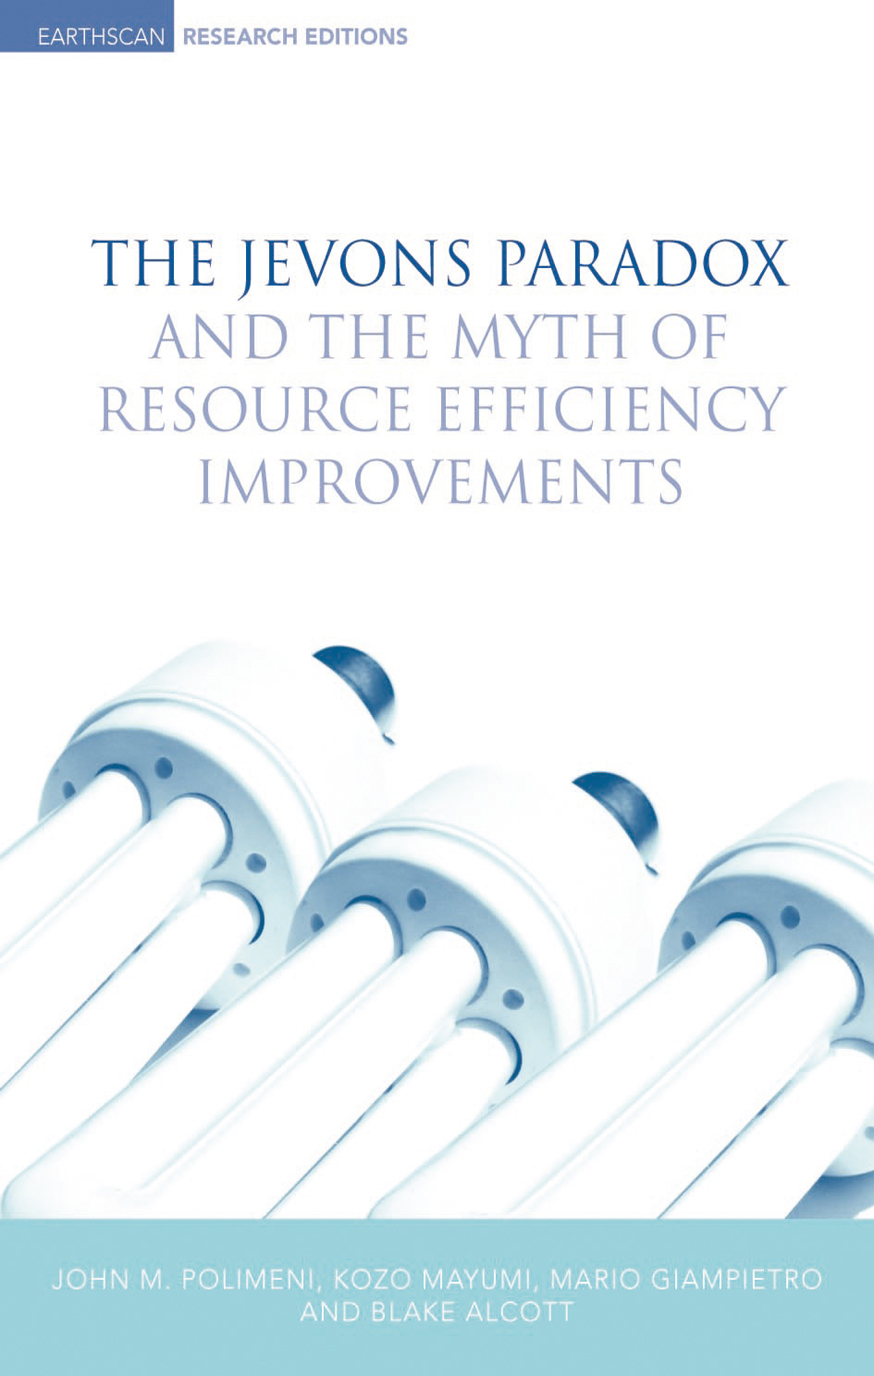 Download Ebook The Jevons Paradox and the Myth of Resource Efficiency Improvements by Blake Alcott Pdf